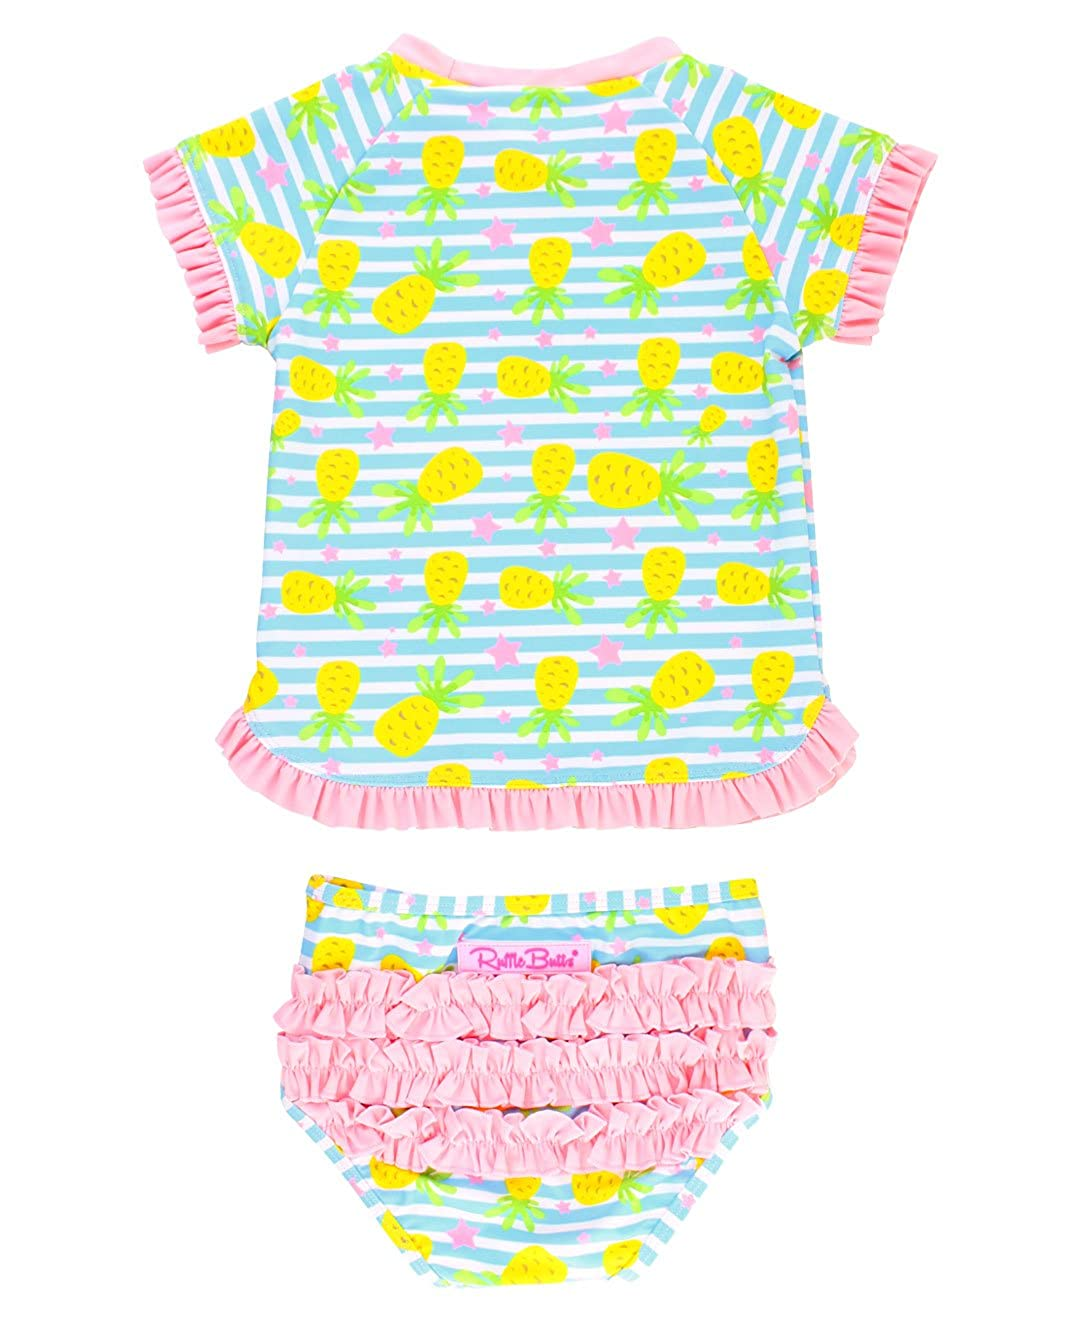 RuffleButts Baby/Toddler Girls Rash Guard 2-Piece Swimsuit Set - Pineapple Print Bikini UPF 50+ Sun Protection RGSBLXX-PPPI-BABY